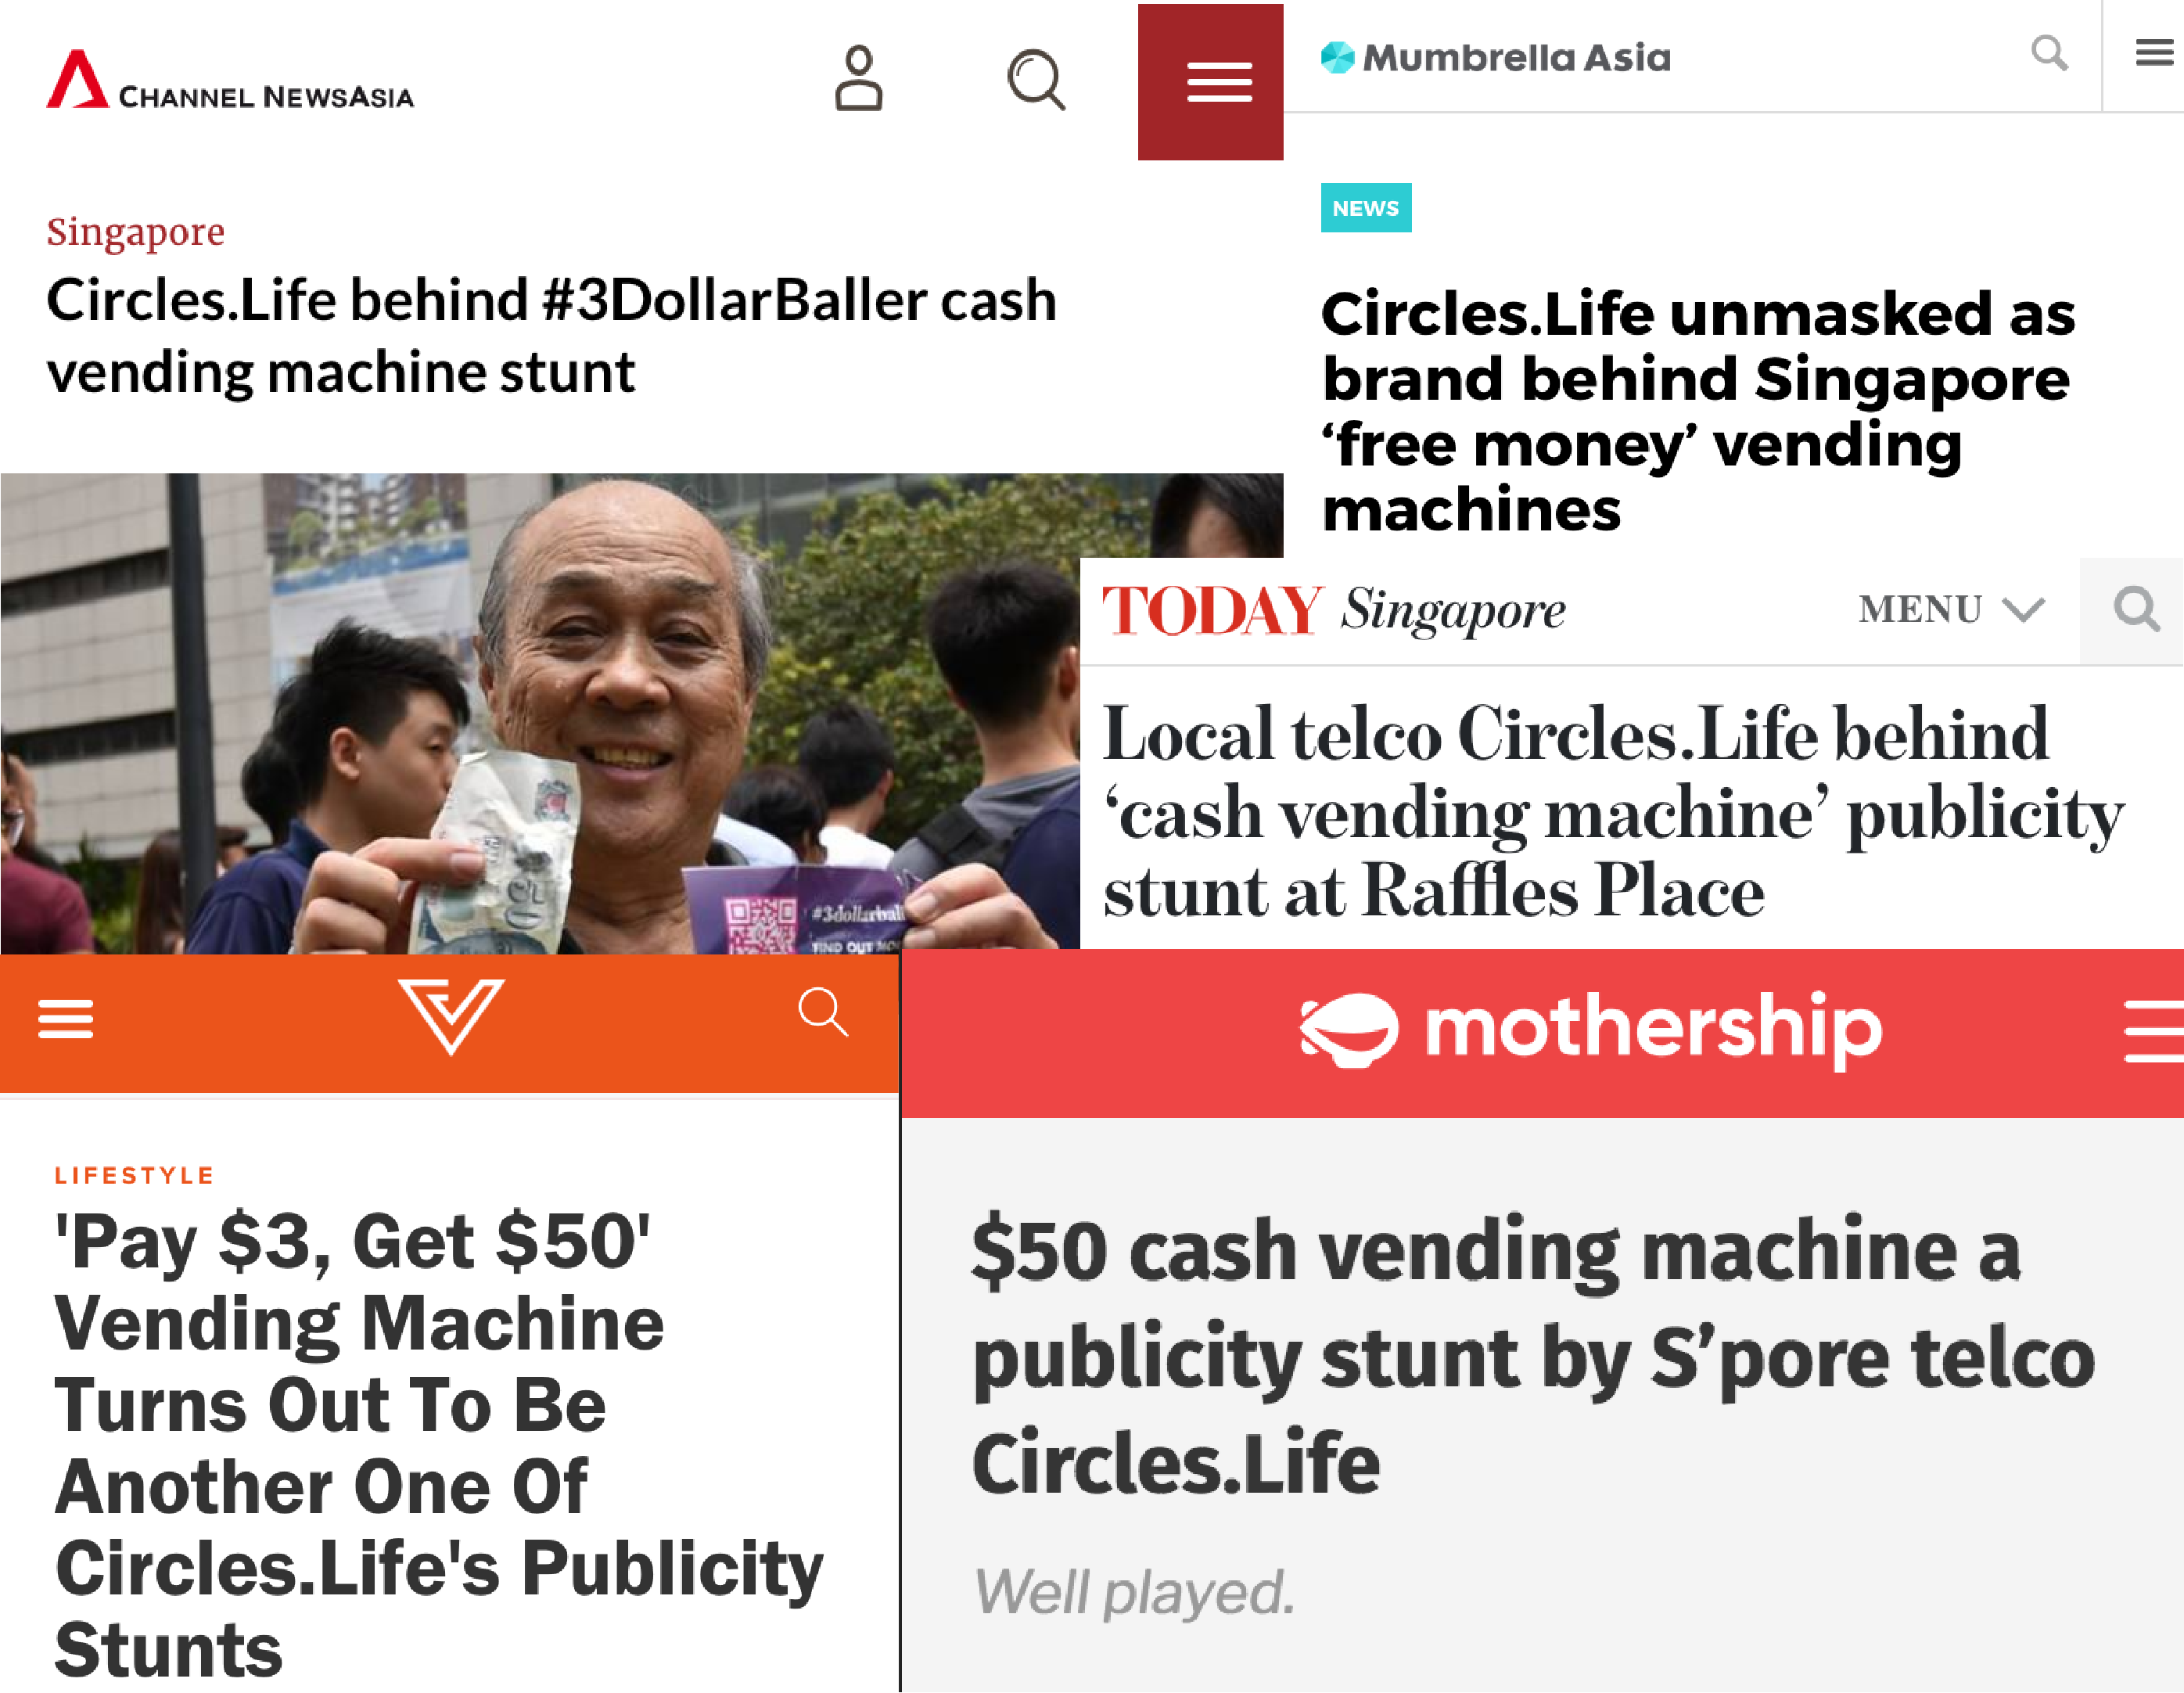 Headlines from the 3DollarBaller campaign